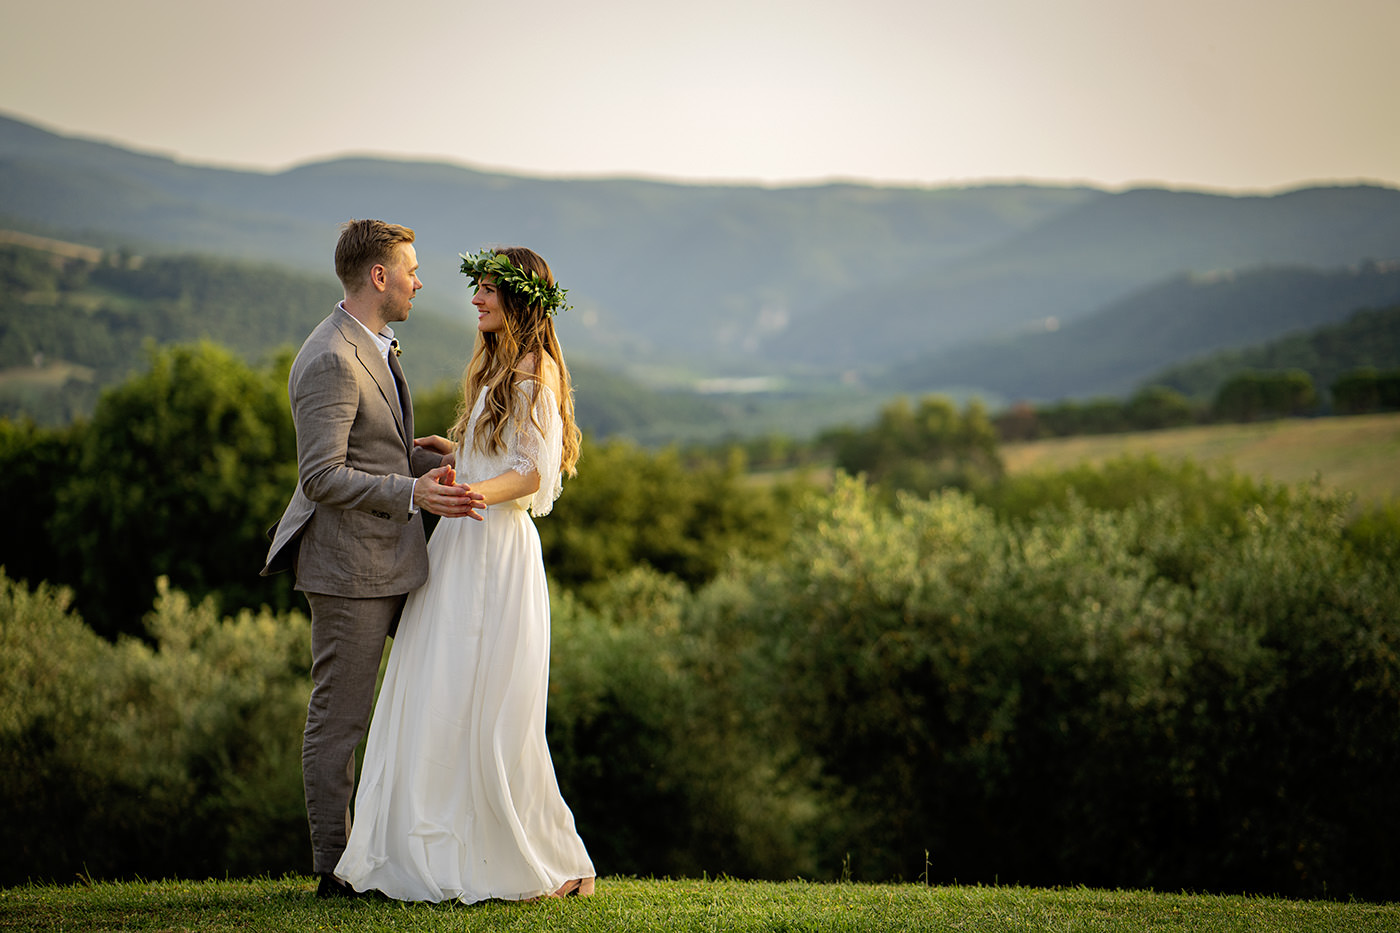 Wedding in Umbria: photo shoots by Duccio Argentini Photography